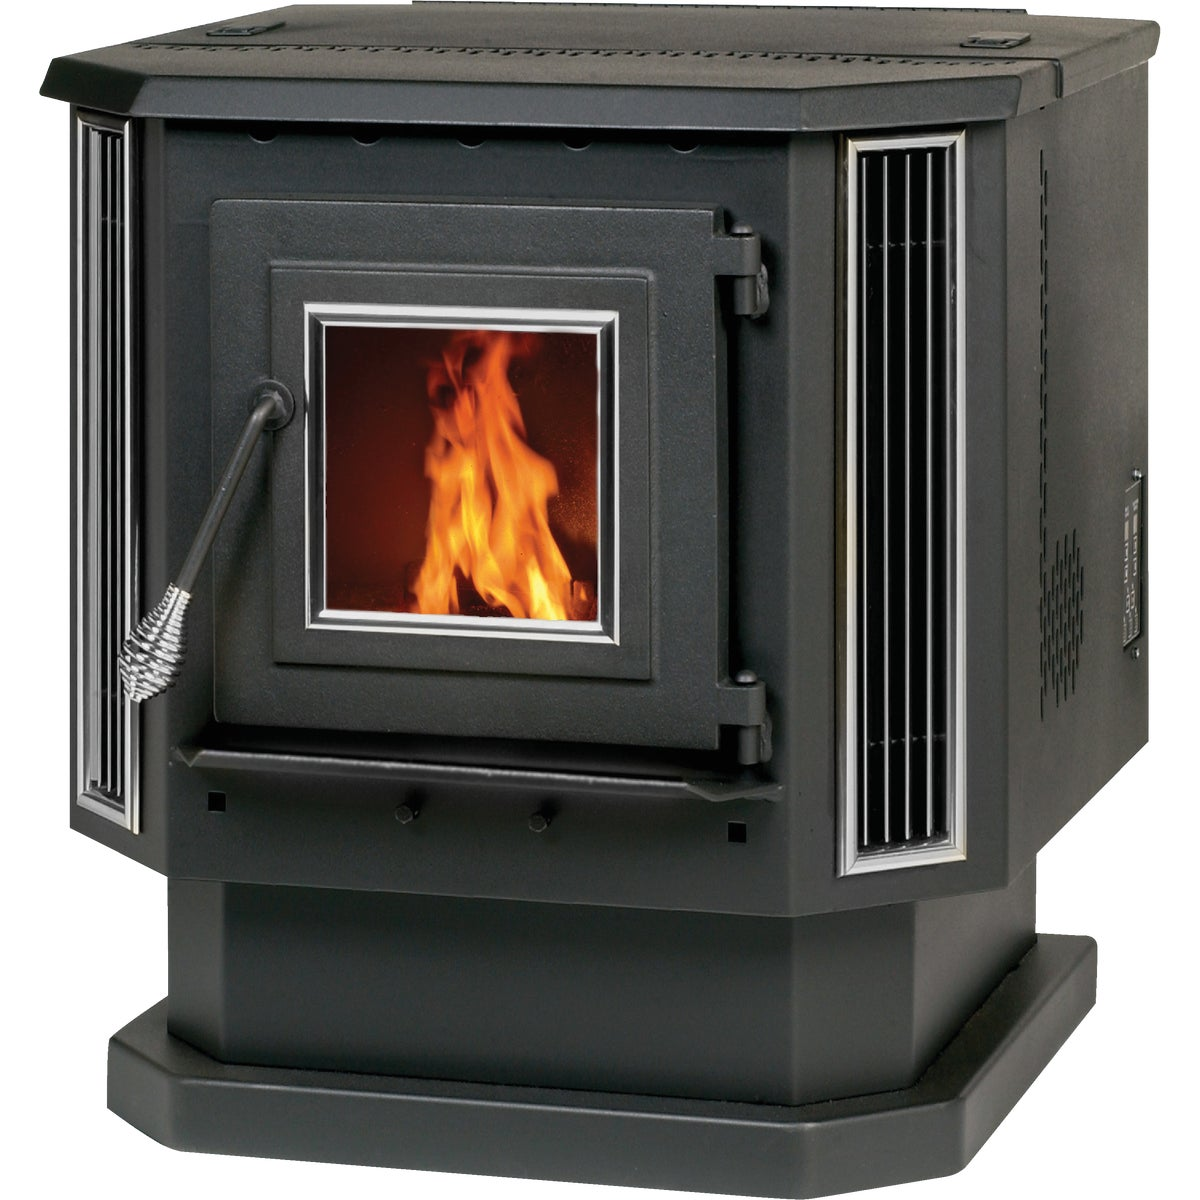 60LB HOPPER PELLET STOVE - 55-SHP22 by Englands Stove Work